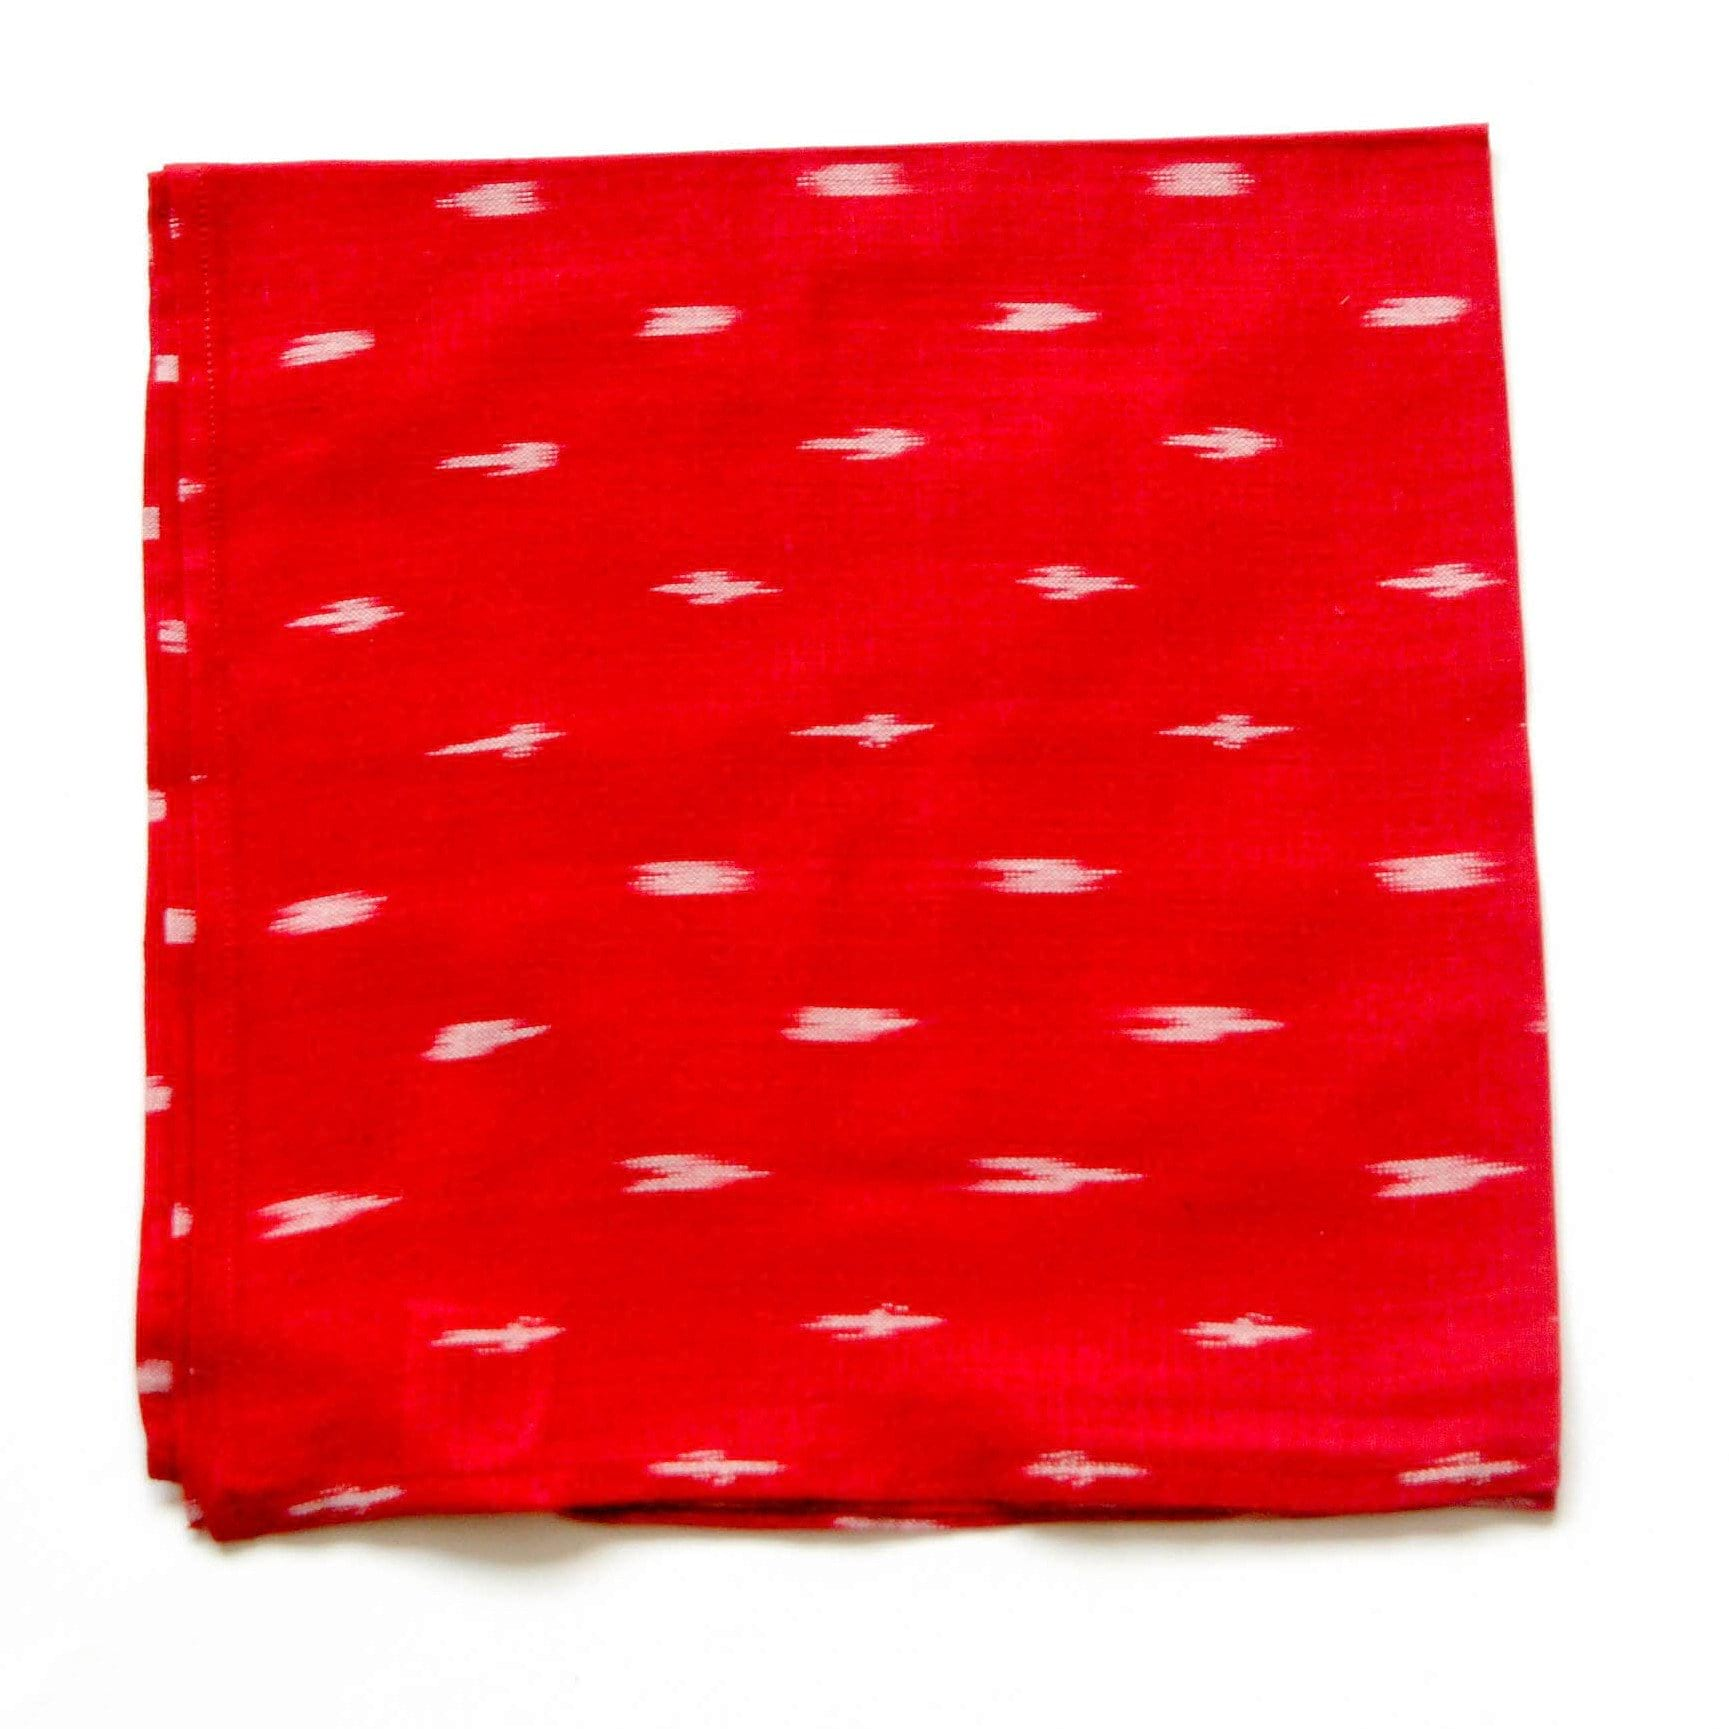 Handwoven Cotton Ikat Red Dash Cloth Dinner Napkins Set of 4